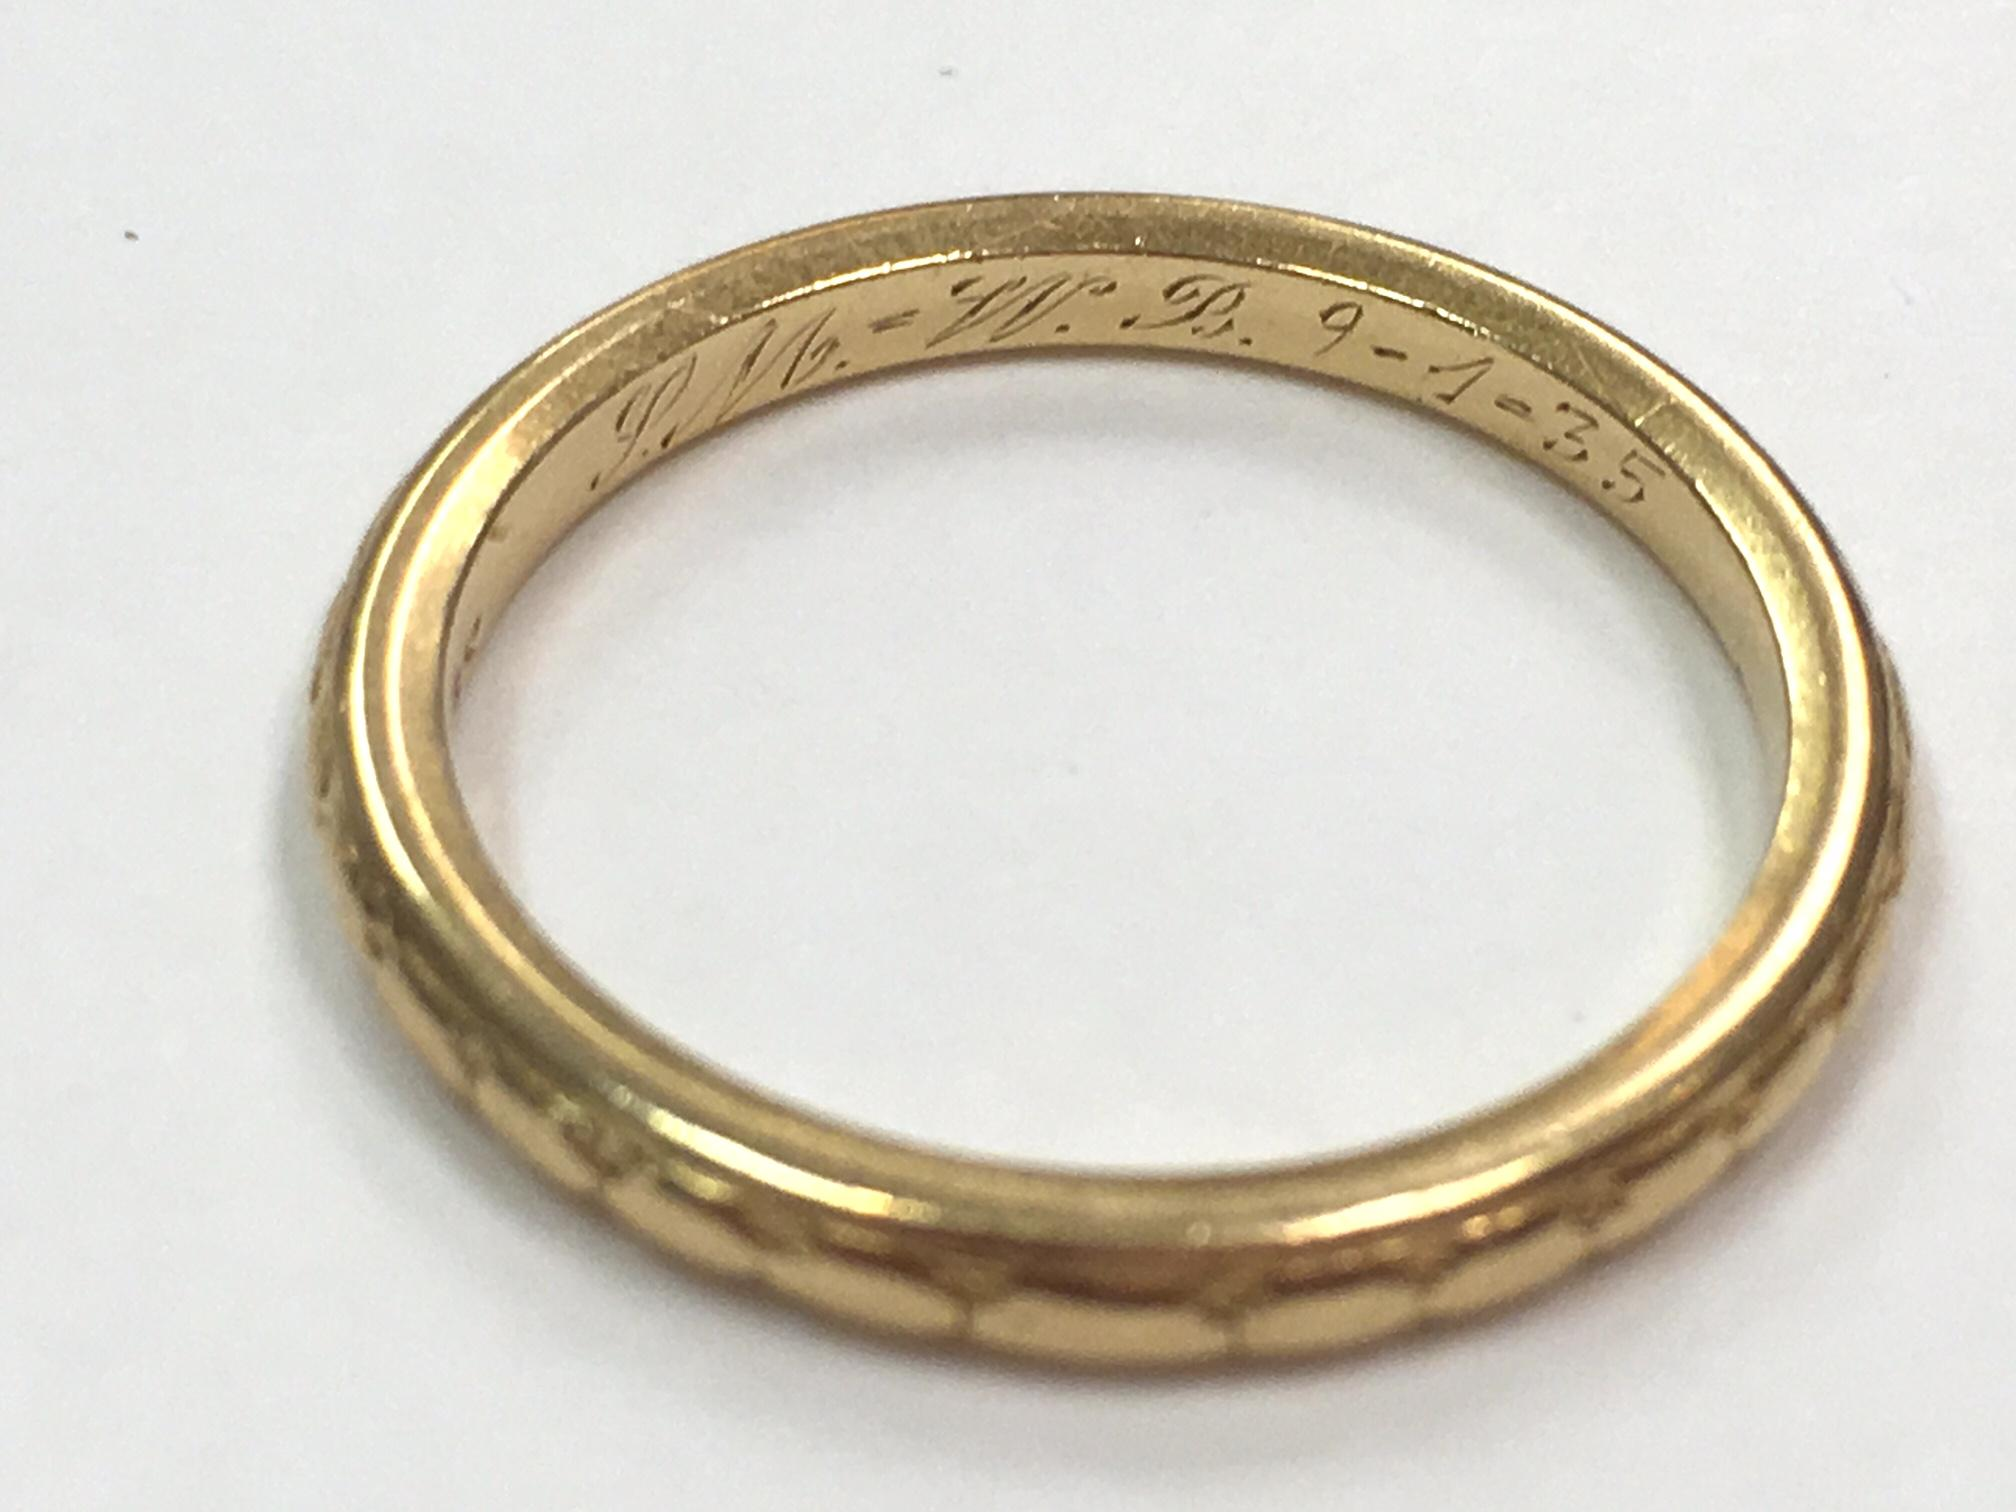 Vintage 1930s 18k Yellow Gold Band Brides Choice Wedding Ring by